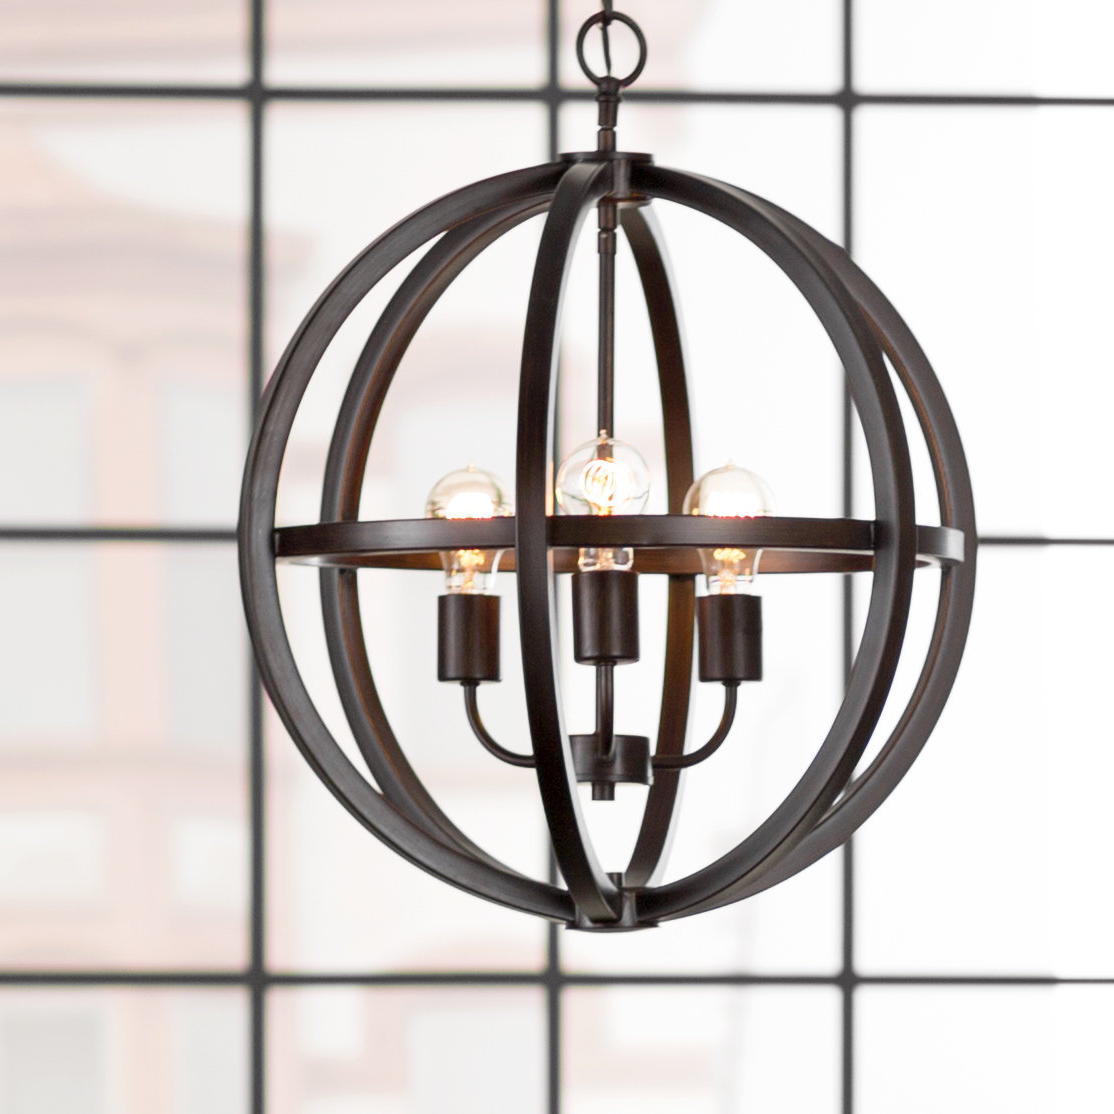 Newest Irwin 1 Light Single Globe Pendants Intended For Irwin Globe Pendant (View 17 of 25)